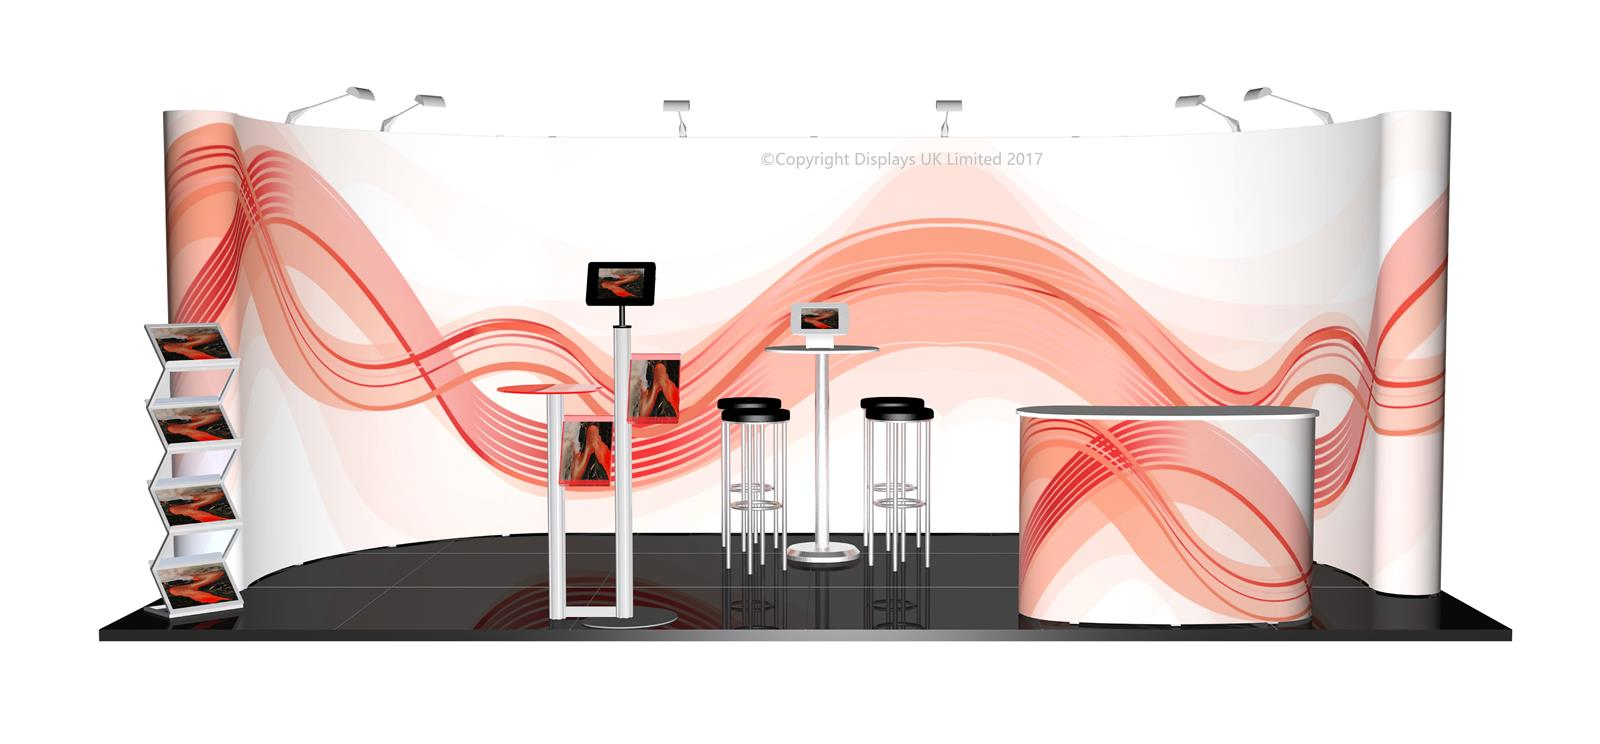 3m x 6m Linked Pop Up Exhibition Stand - Kit 32 - P6x3-1aC